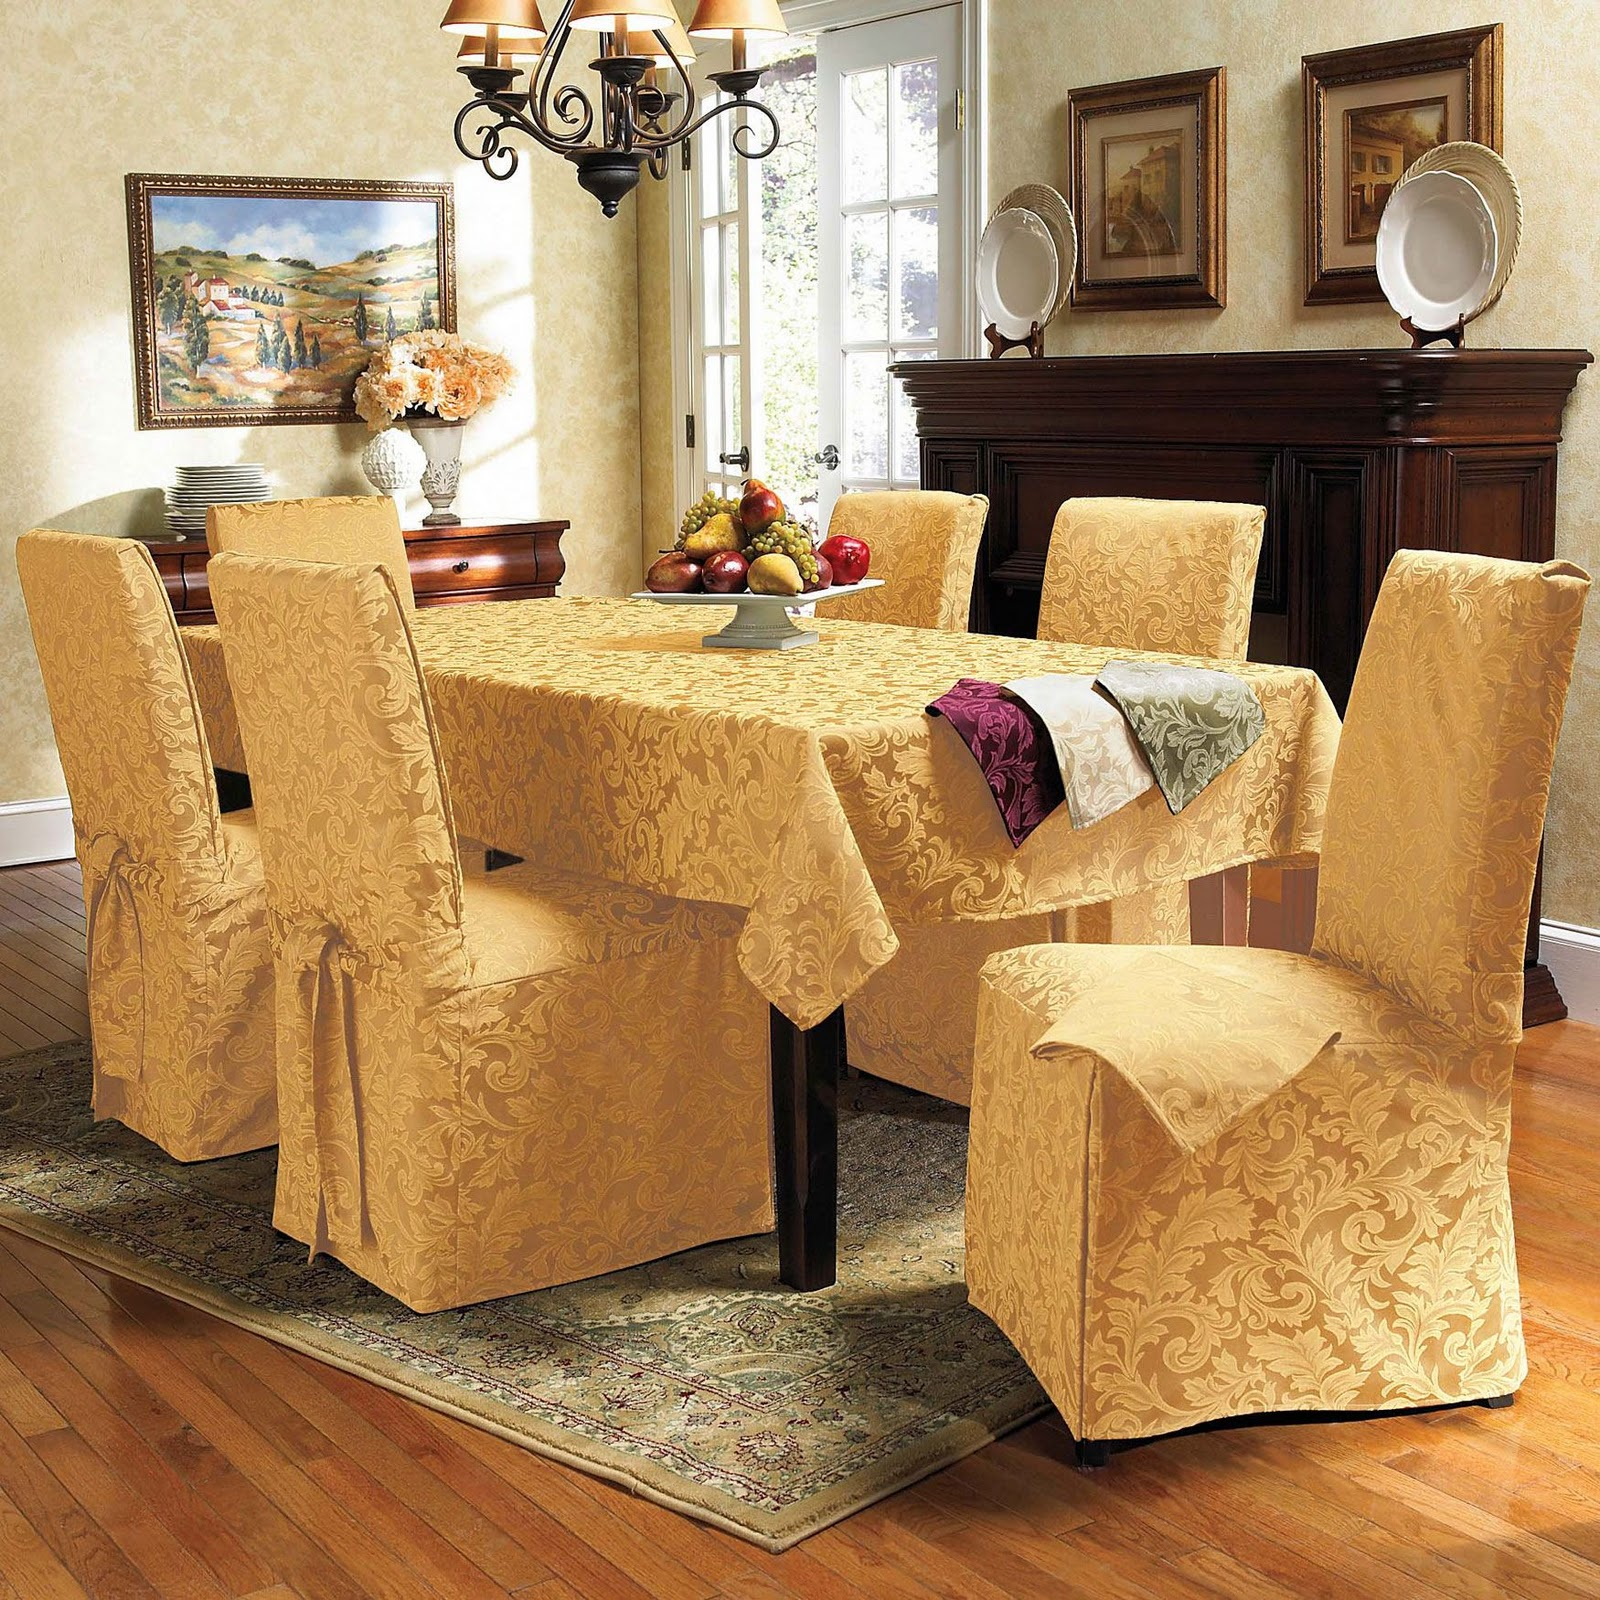 Dining room table chair covers Photo - 1